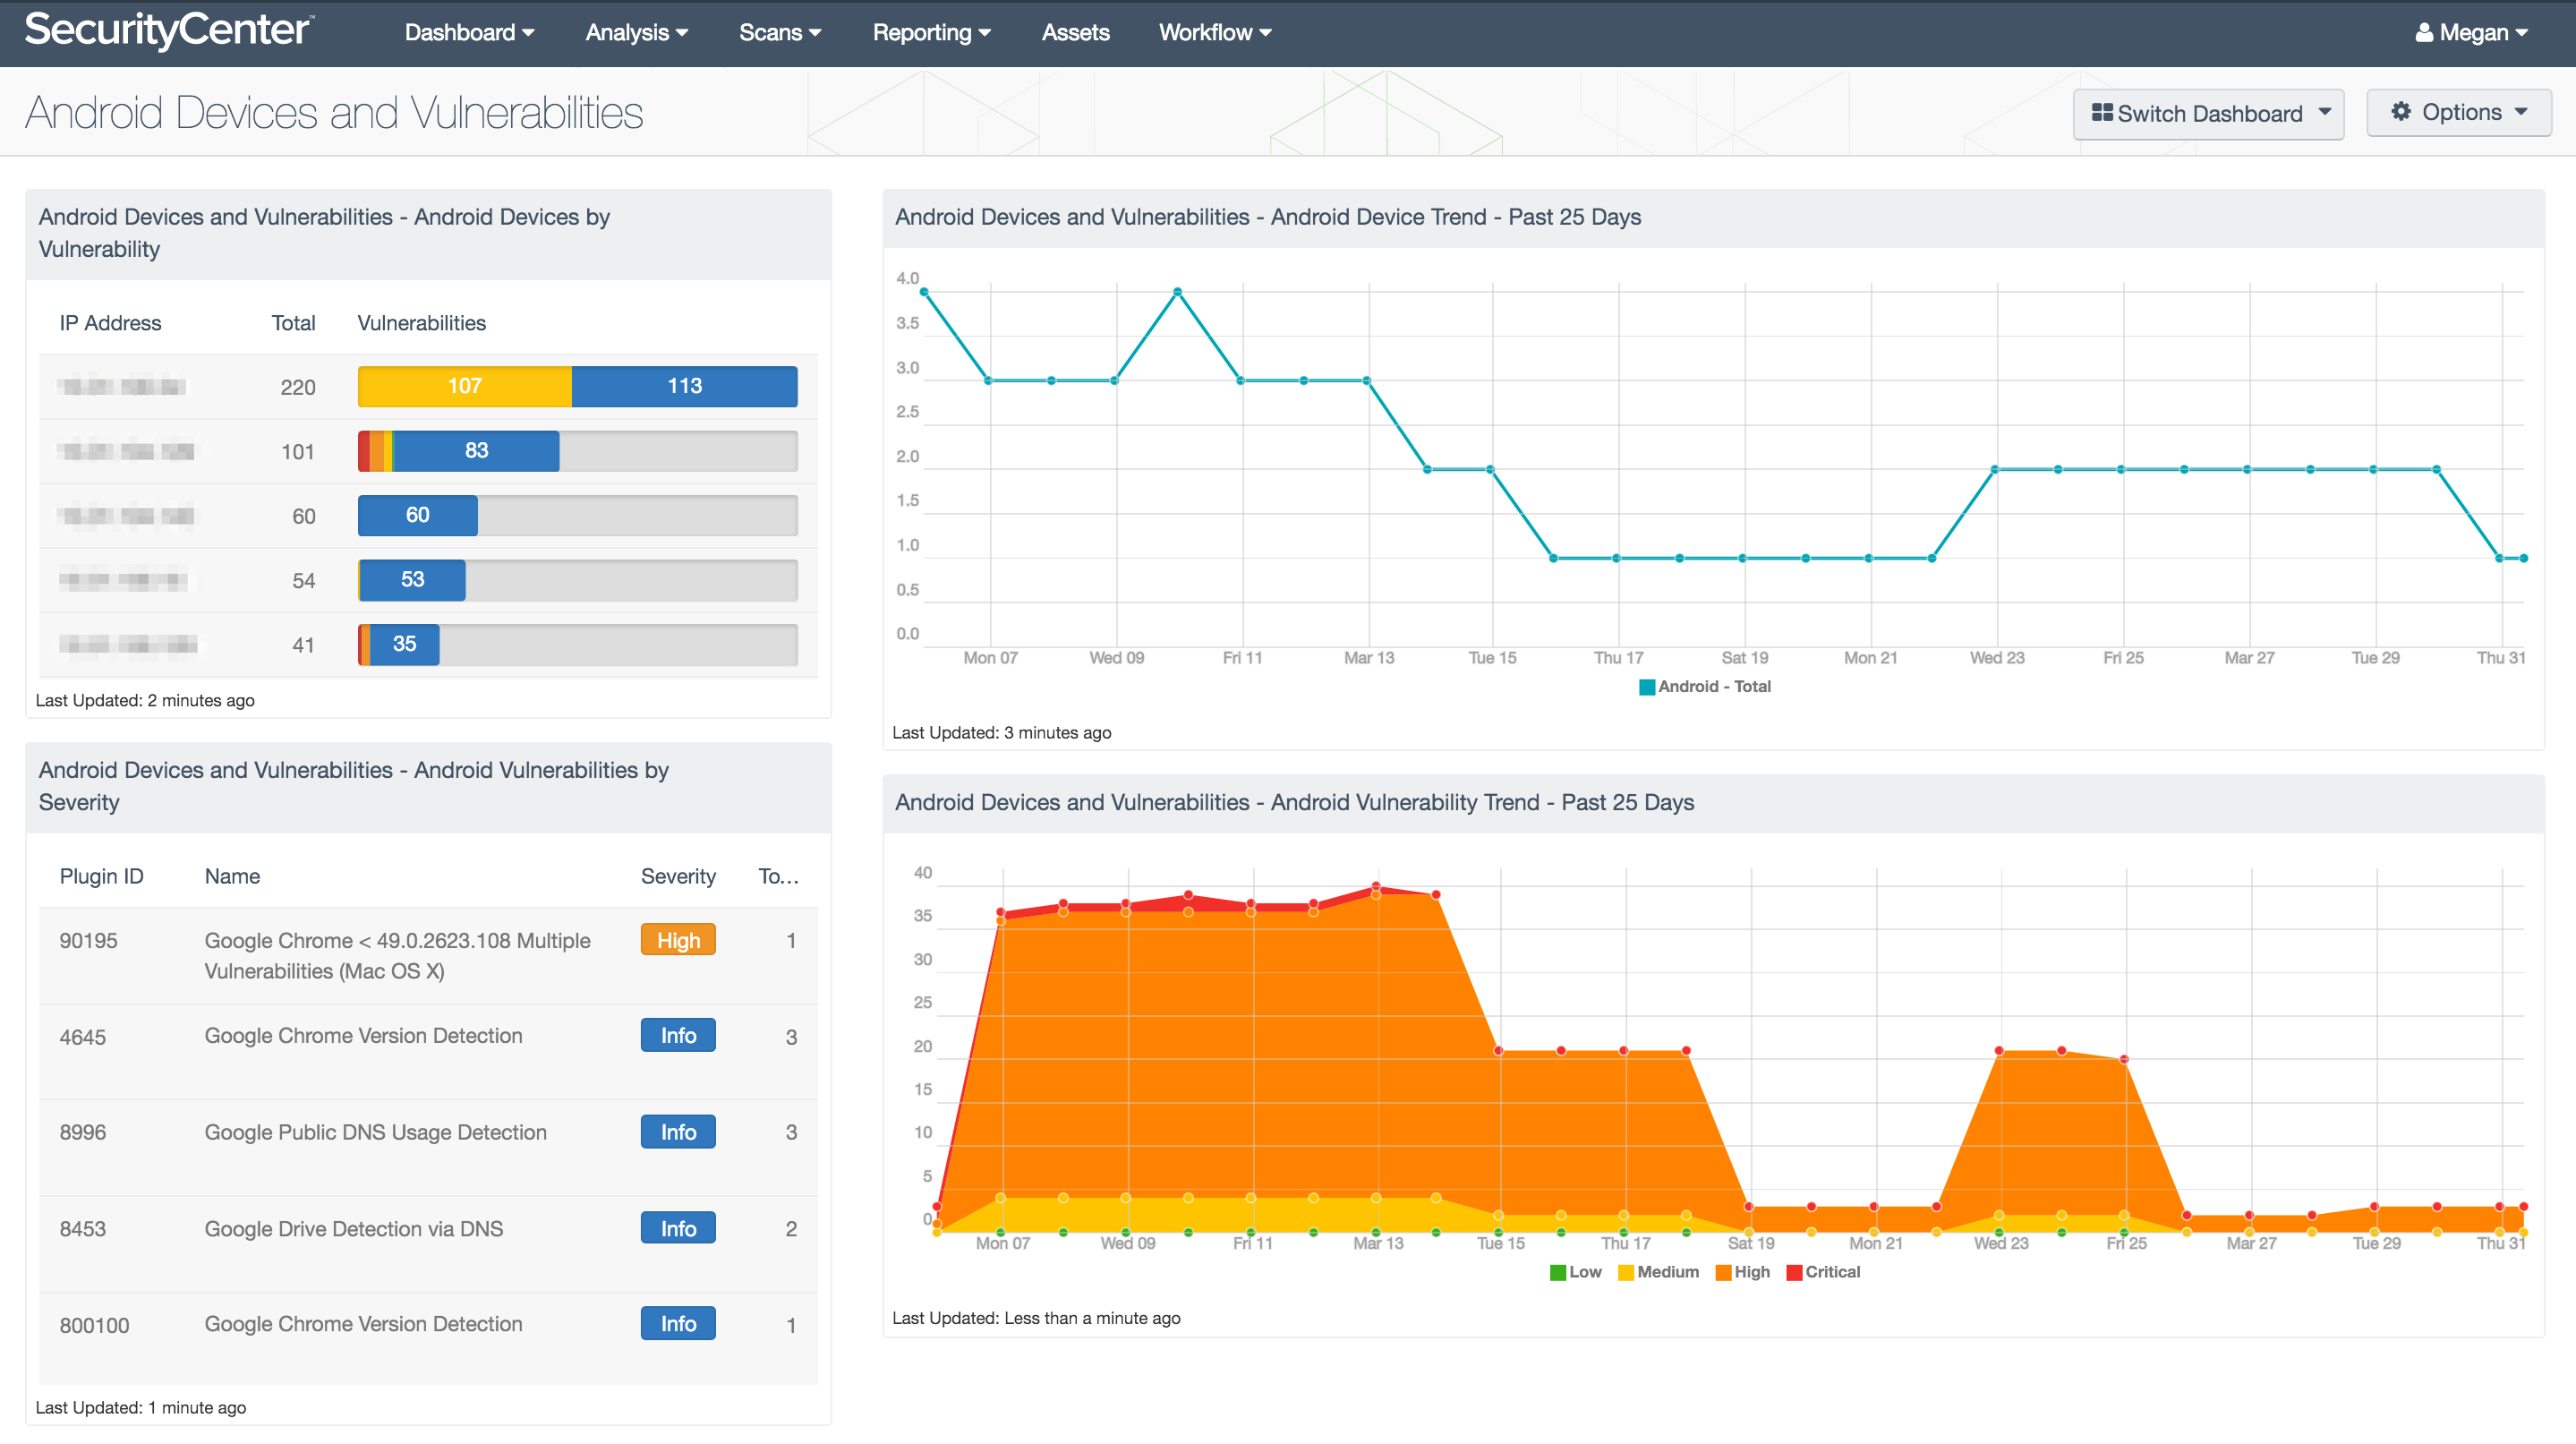 Android Devices and Vulnerabilities Dashboard